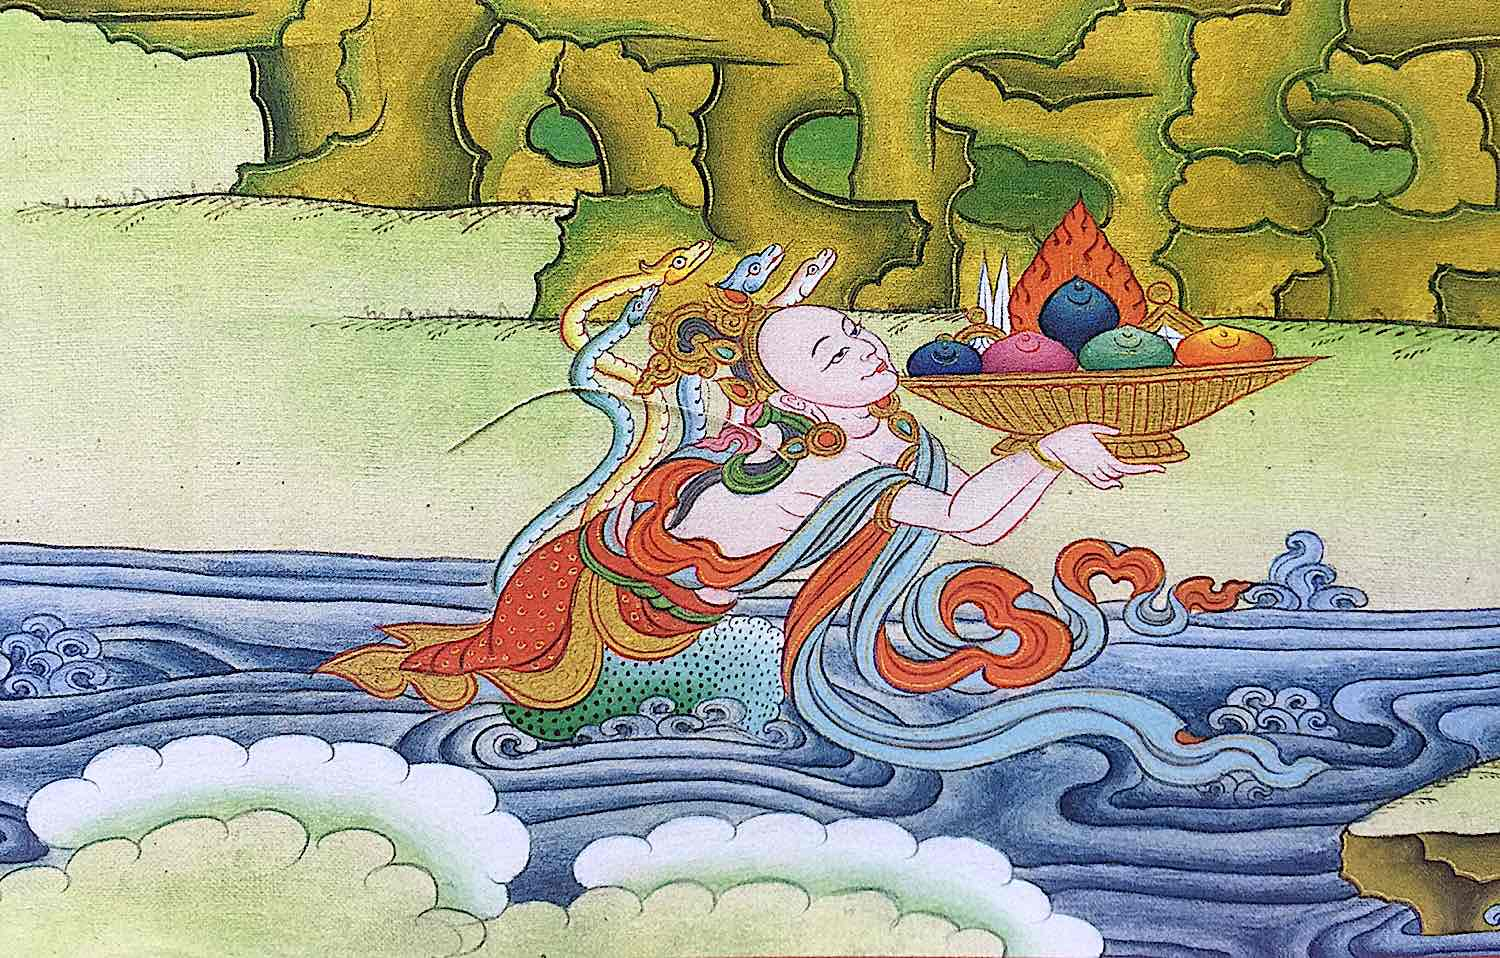 Naga rising from the waters receiving offerings.